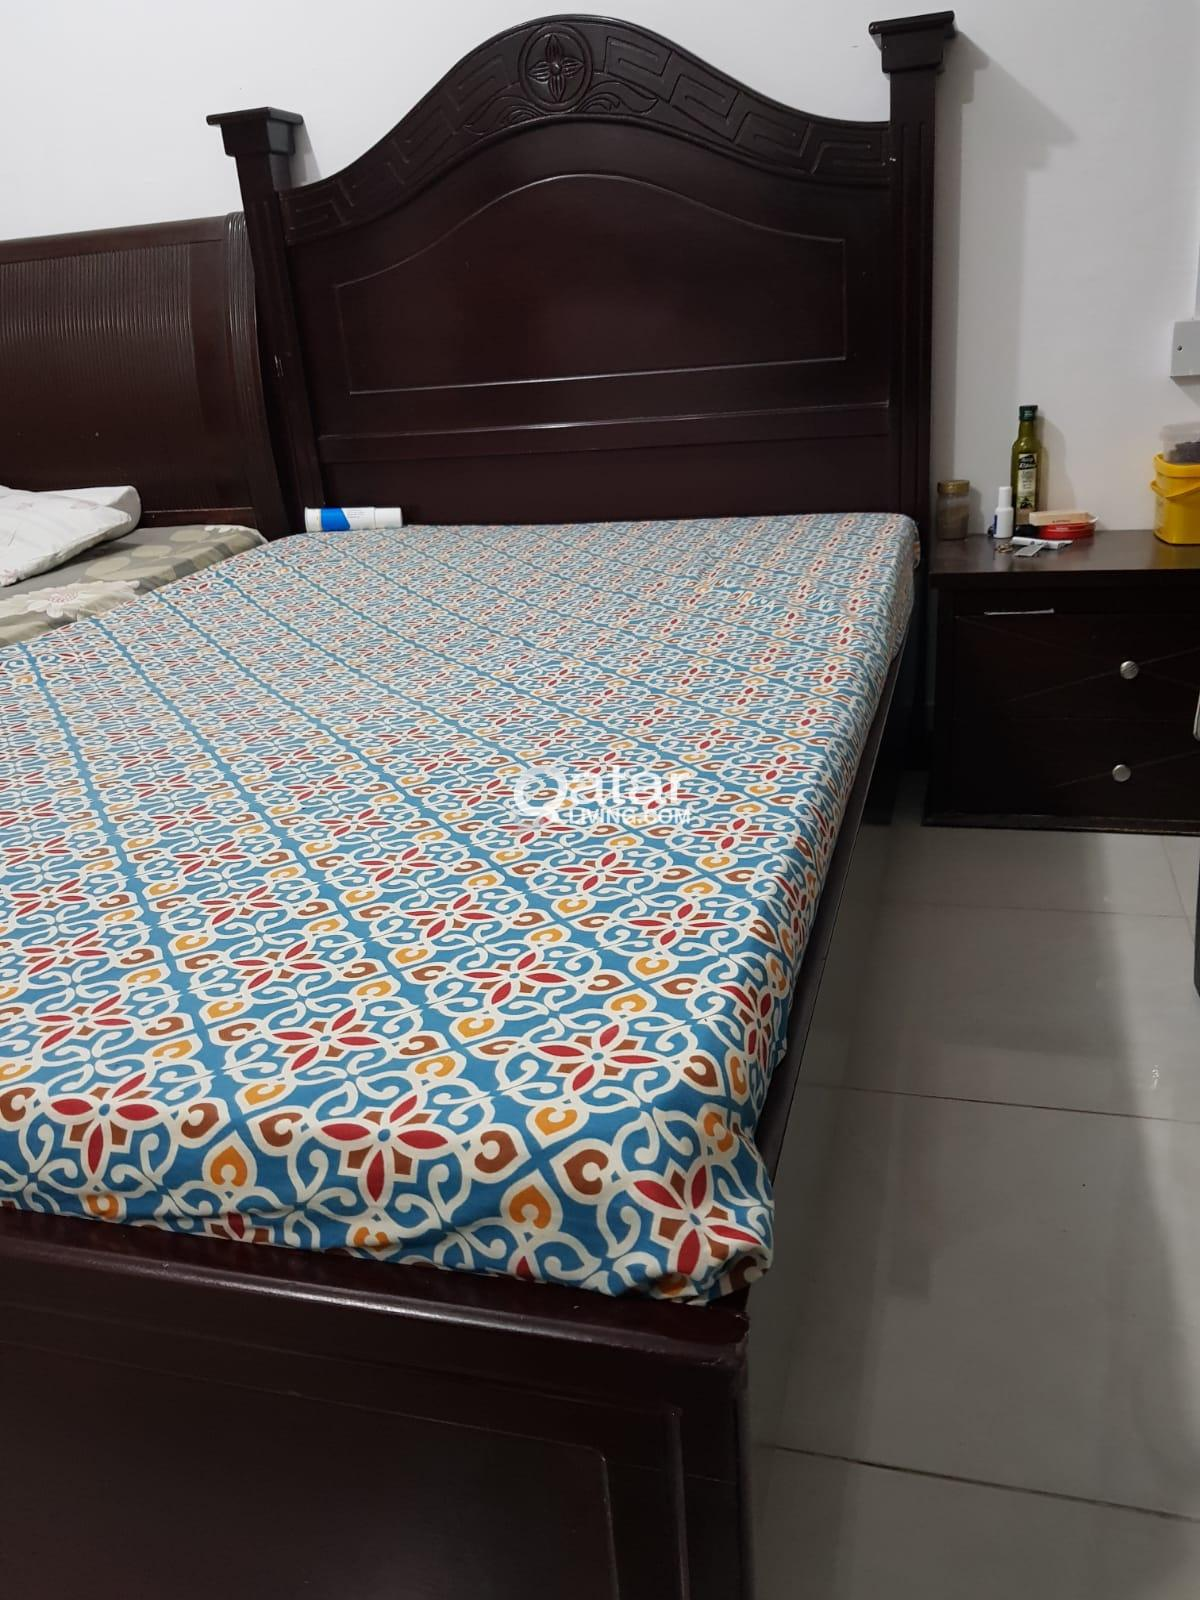 Bed 120 X 190 Single Bed 120x190 With Mattress Qatar Living